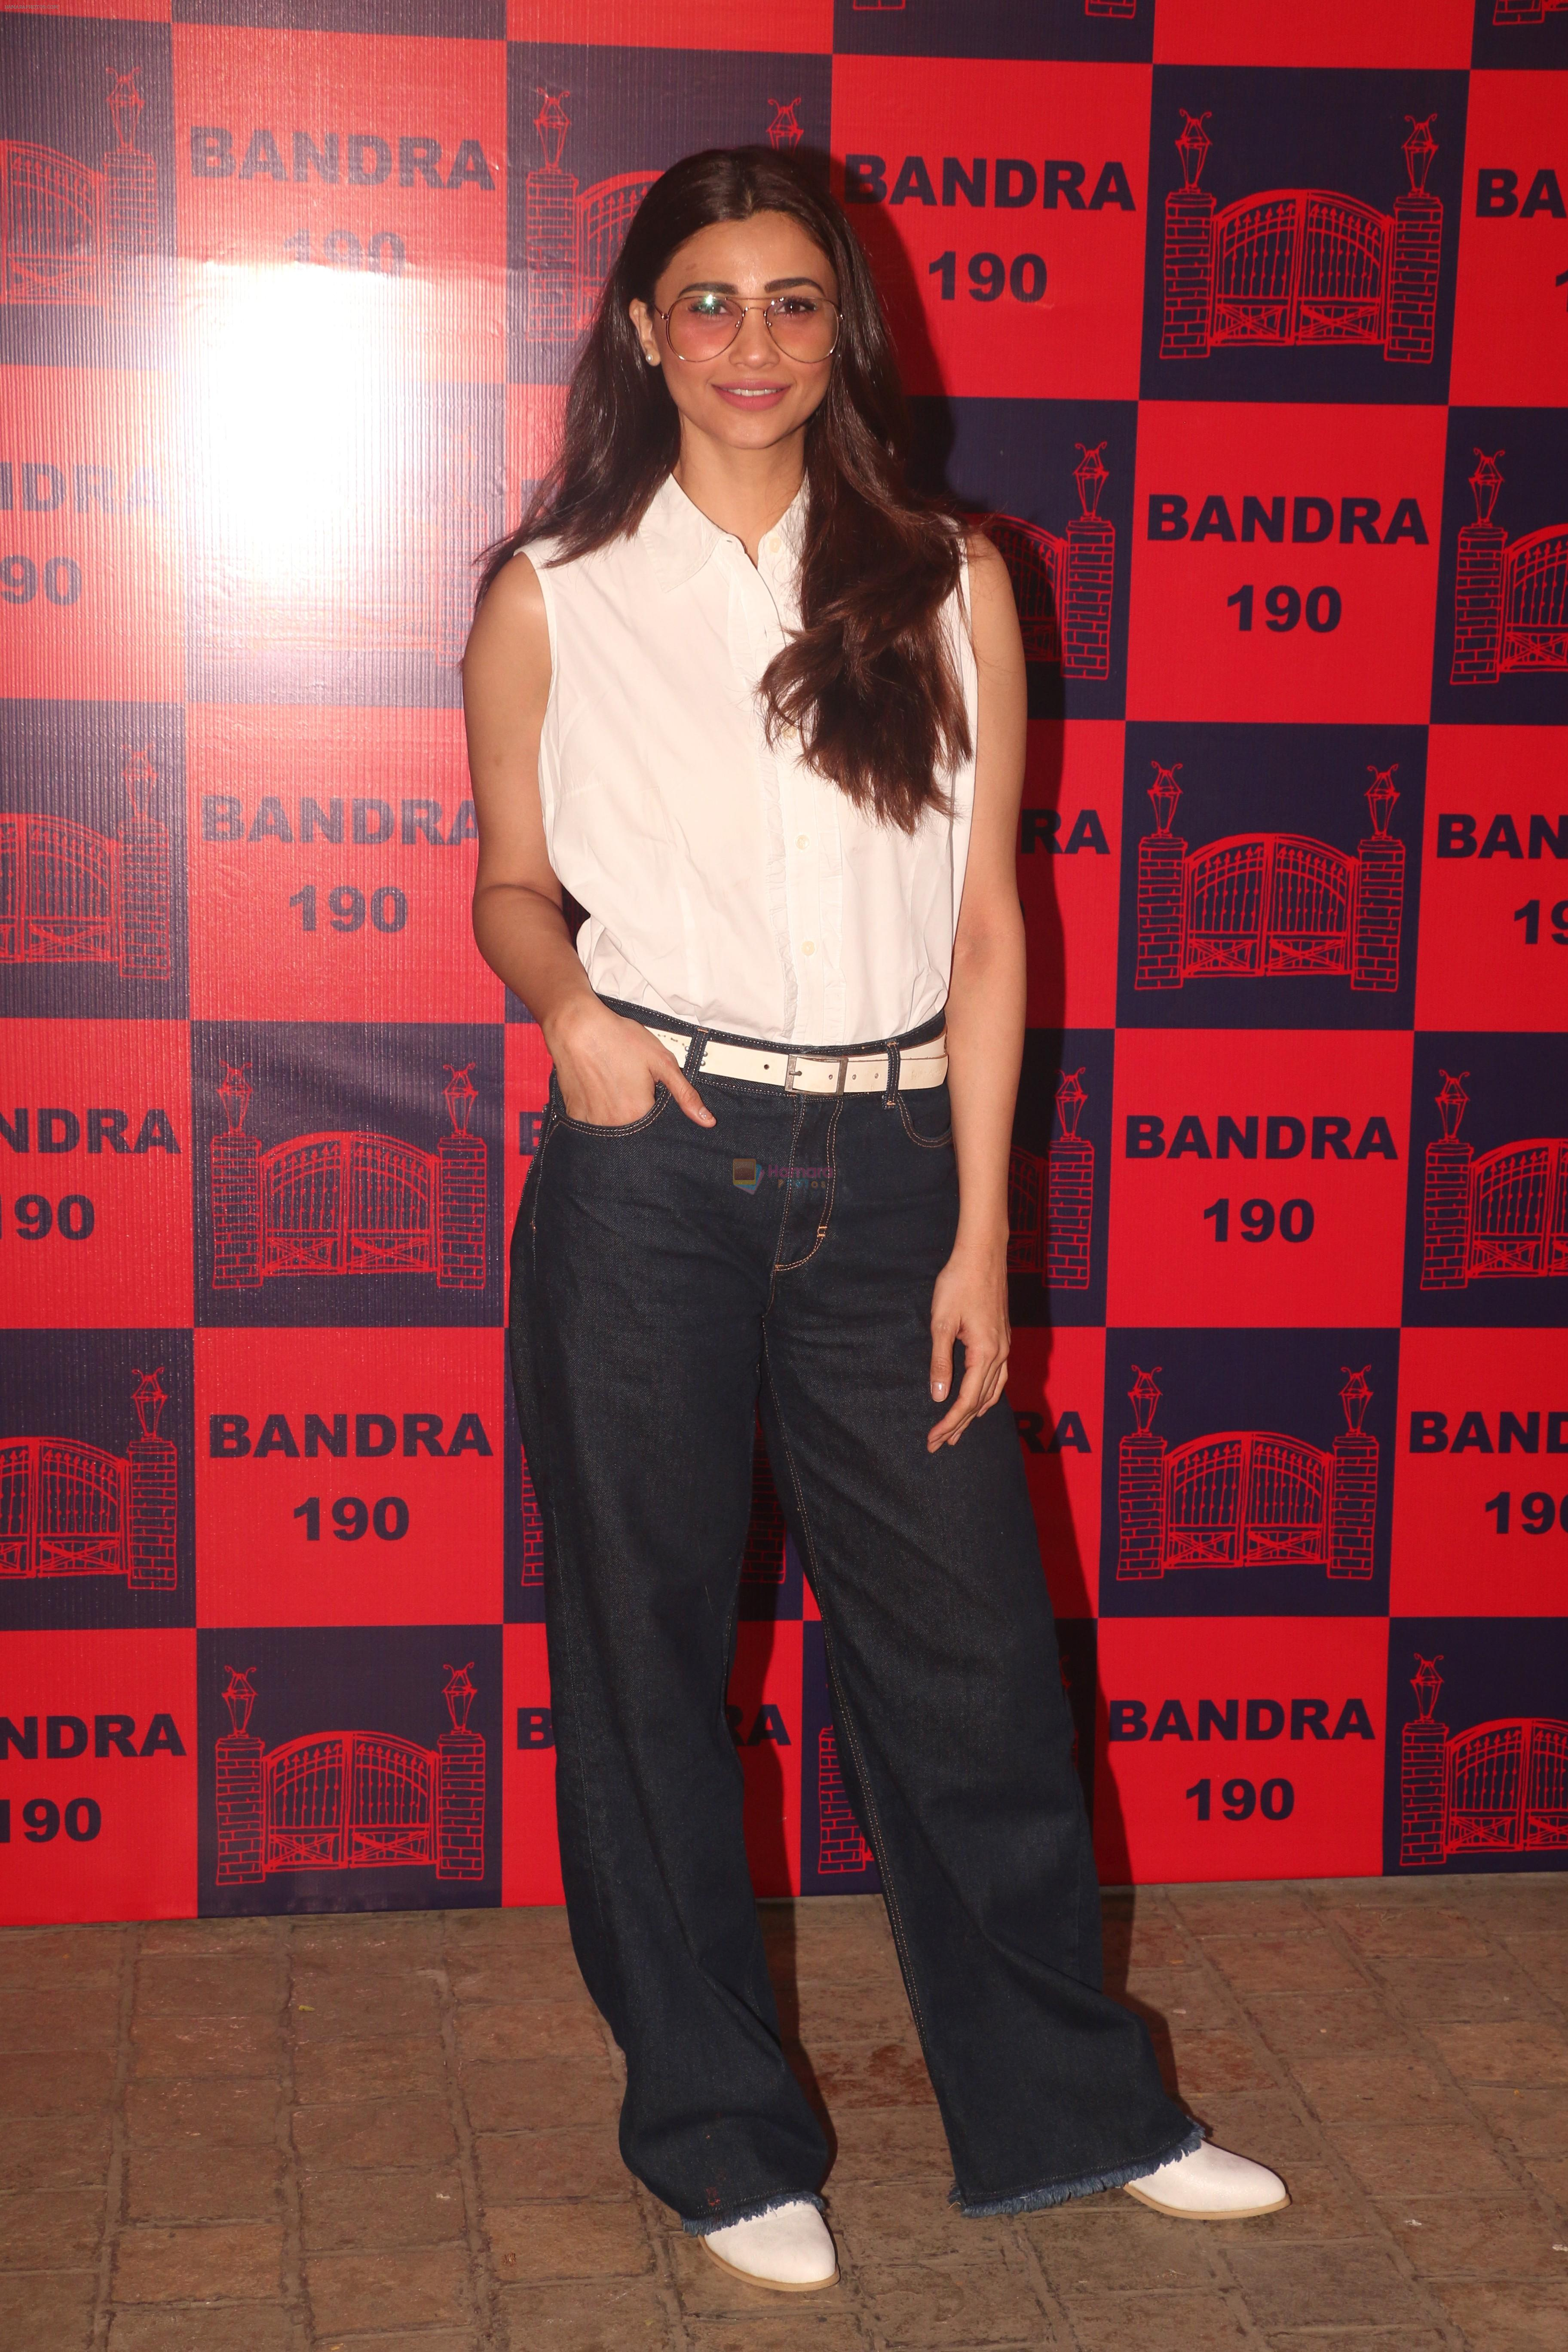 Daisy Shah attend a fashion event at Bandra190 on 21st Feb 2019